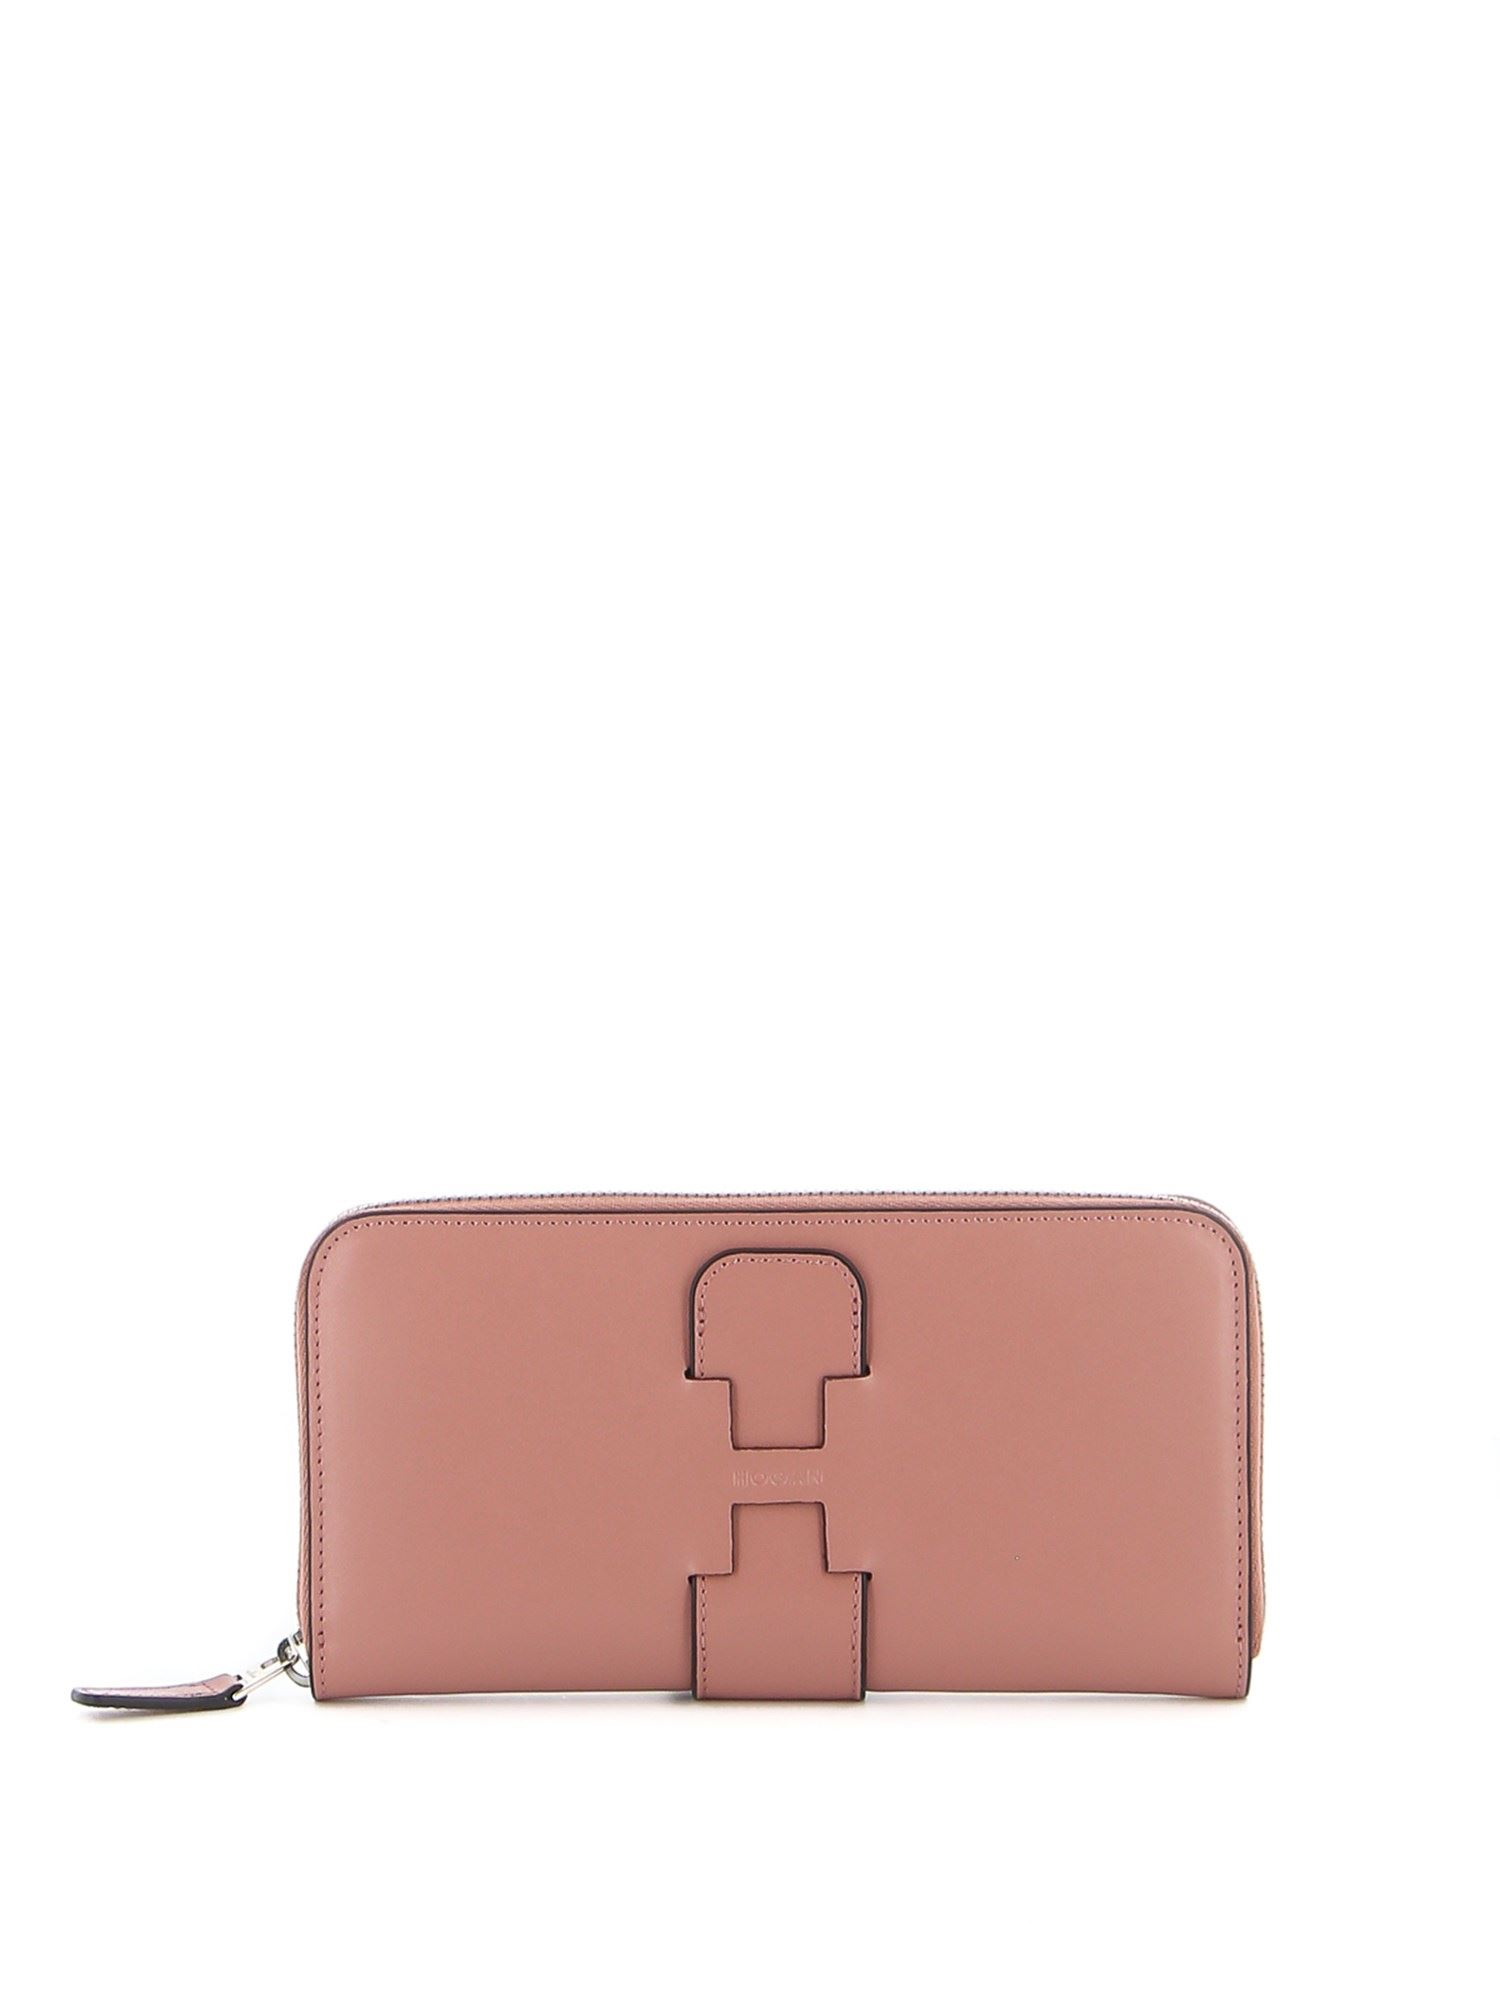 Hogan LEATHER CONTINENTAL WALLET IN PINK